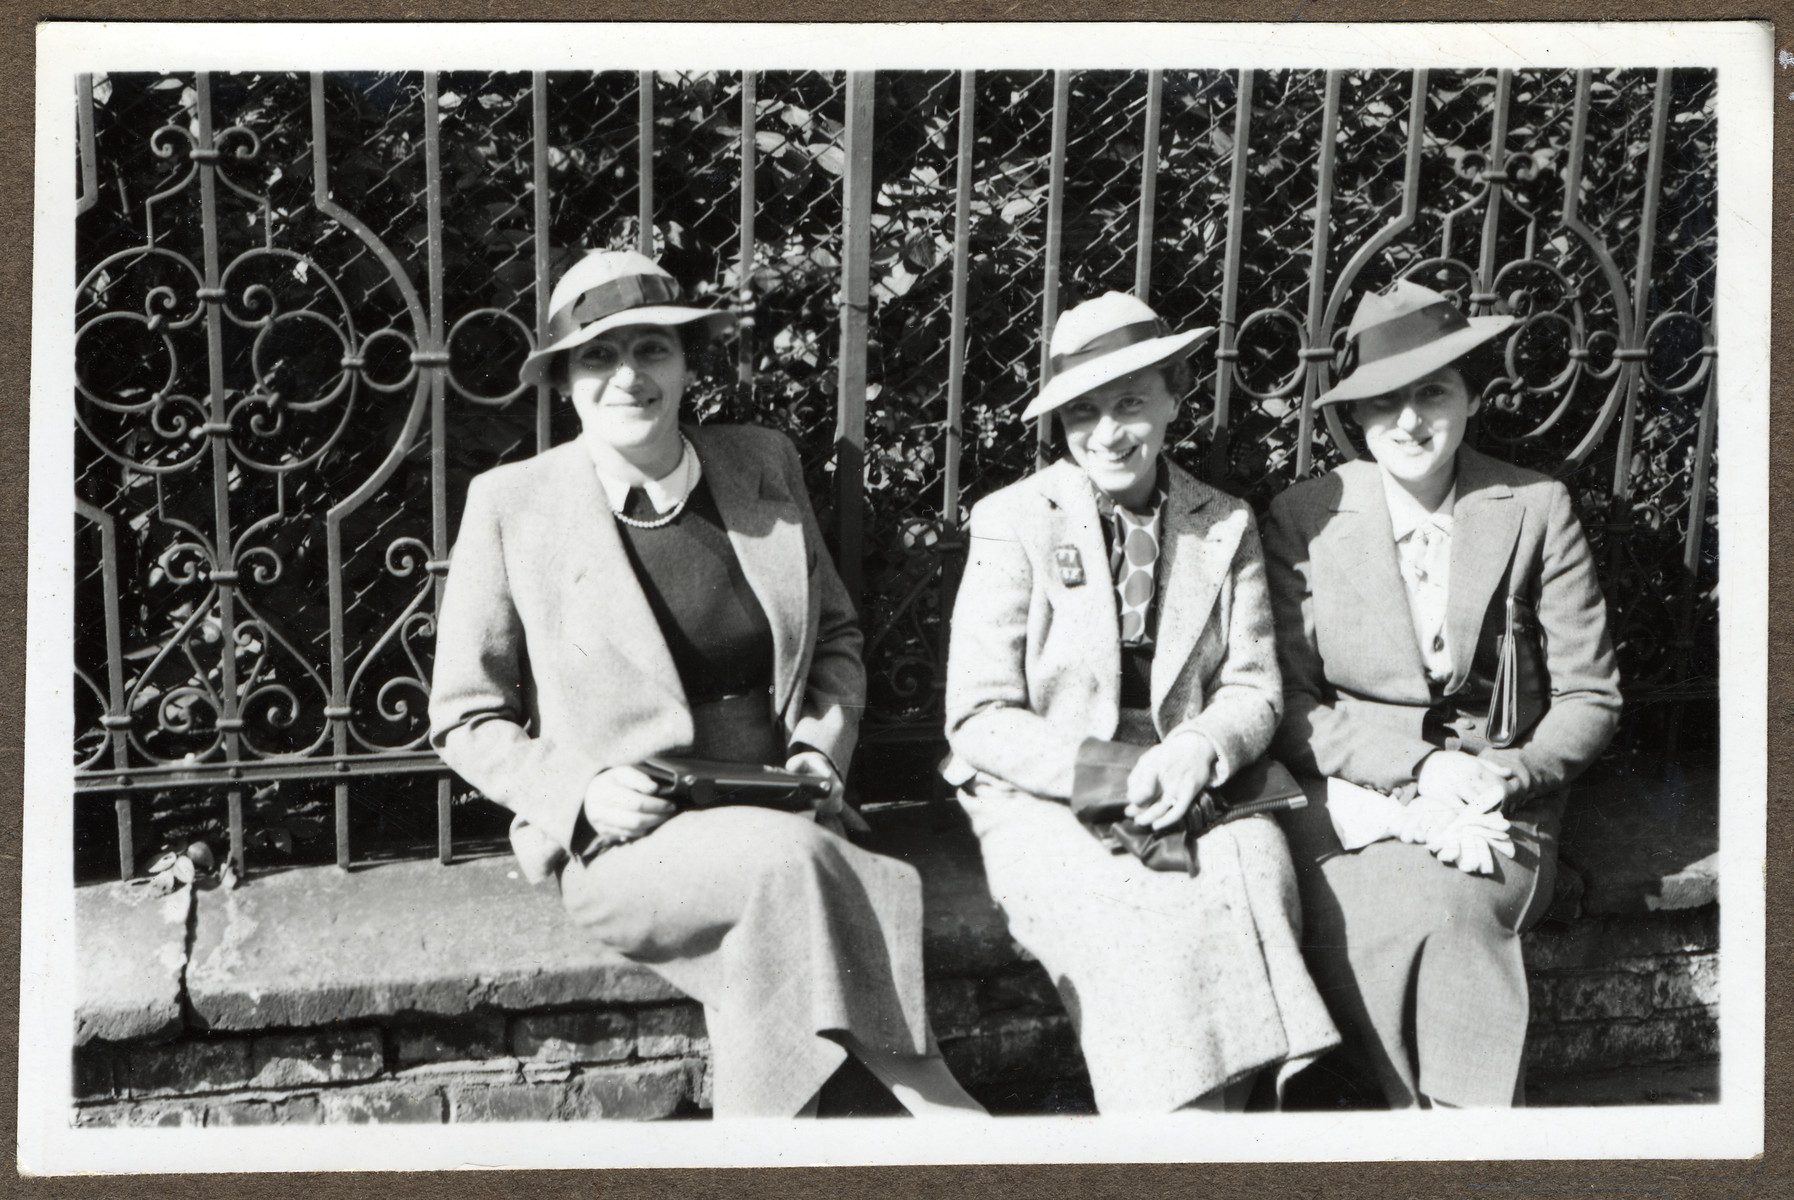 Three Czech  women of Jewish origin sit together on a ledge in front of a metal fence in Nachod.  Pictured are Zofie Polakova, Lola Krausova and Zdenka Beckova.